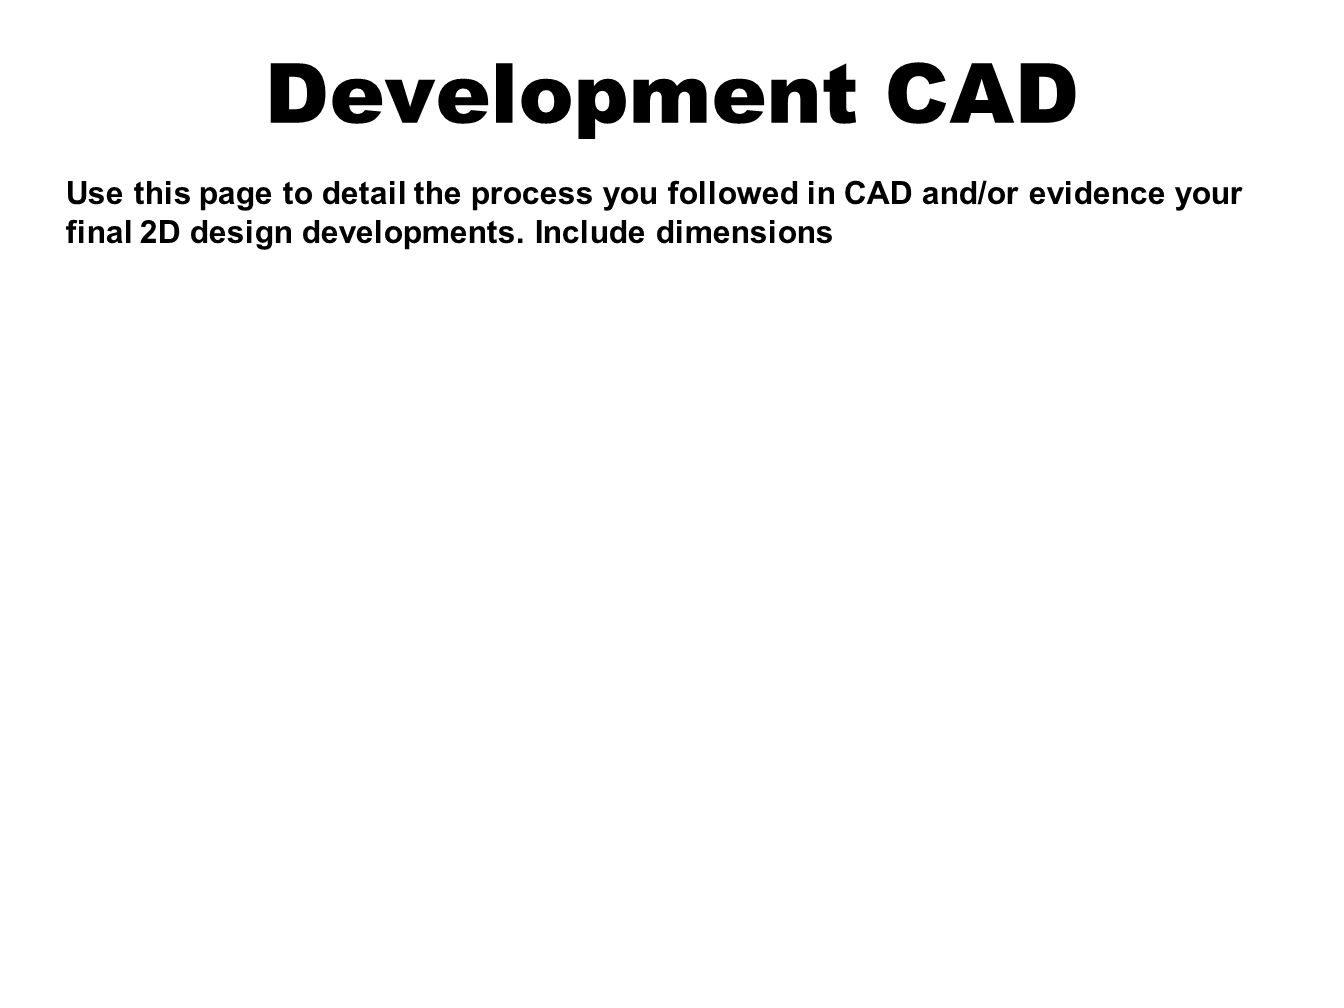 Development CAD Use this page to detail the process you followed in CAD and/or evidence your final 2D design developments.